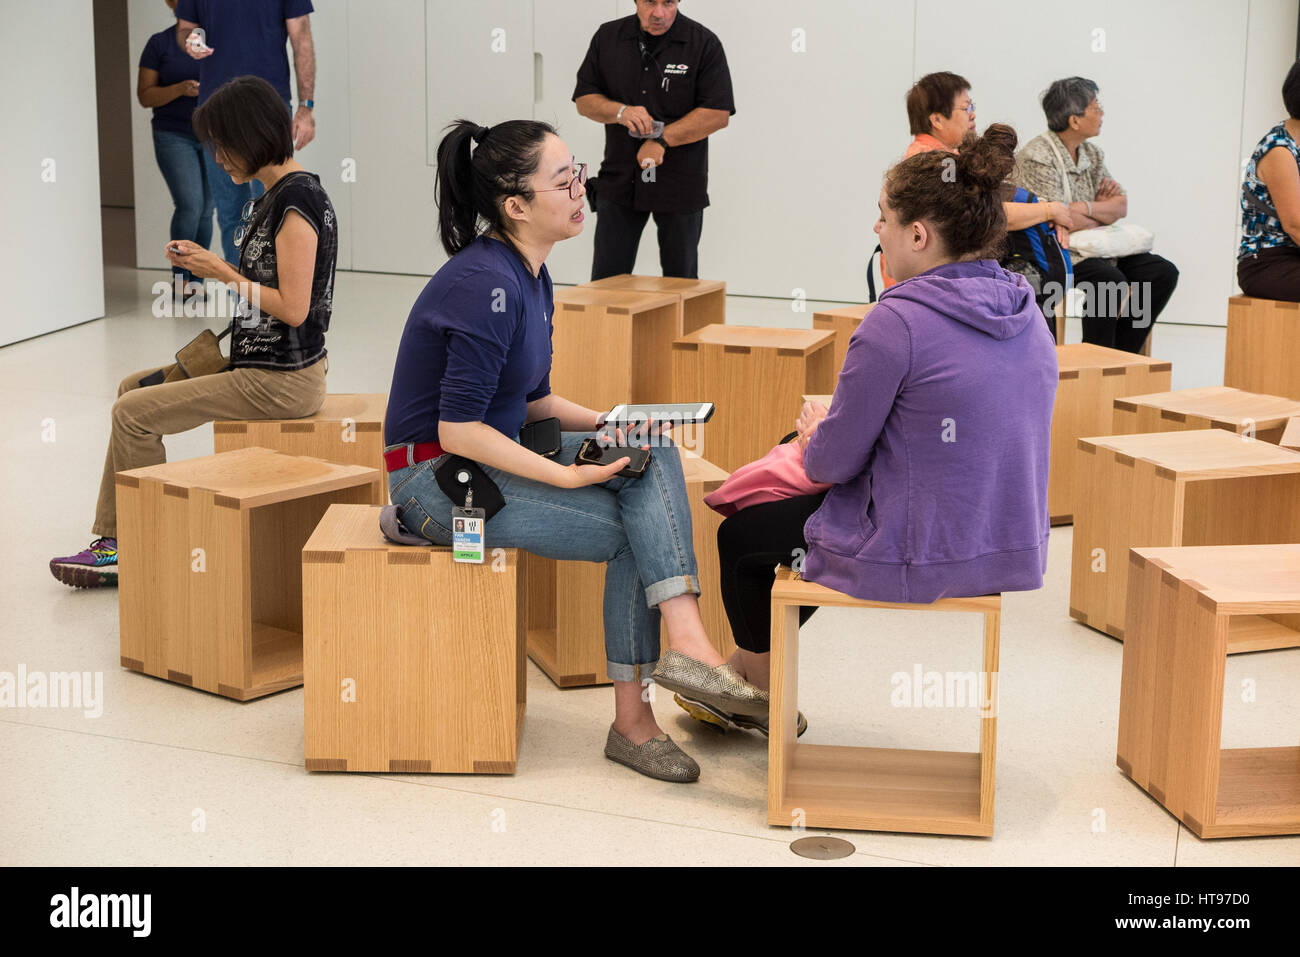 Apple Store Employee During Her One On One Help Session With A Customer  Inside